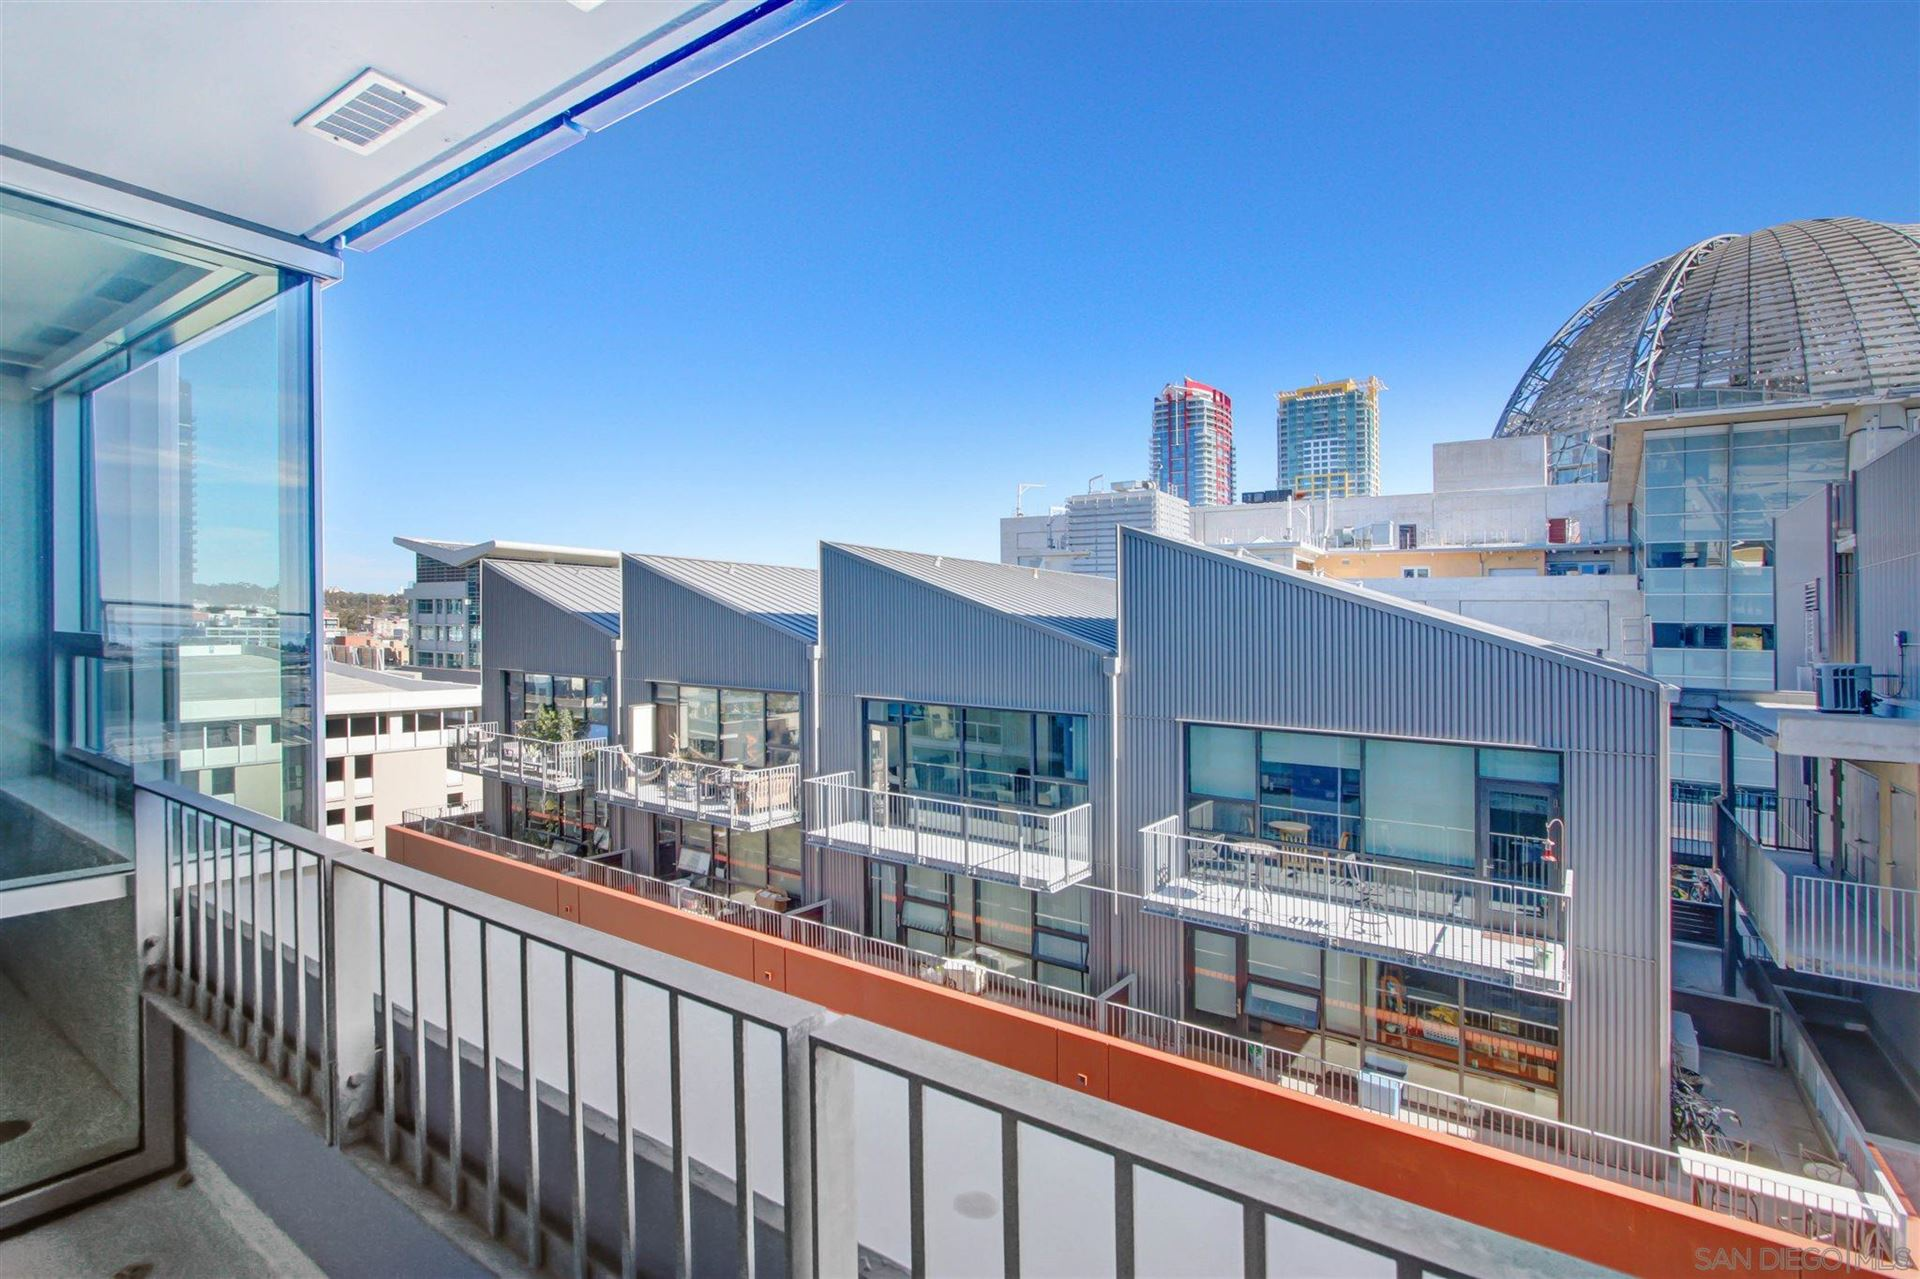 Photo of 321 10Th Ave #1205, San Diego, CA 92101 (MLS # 210000985)